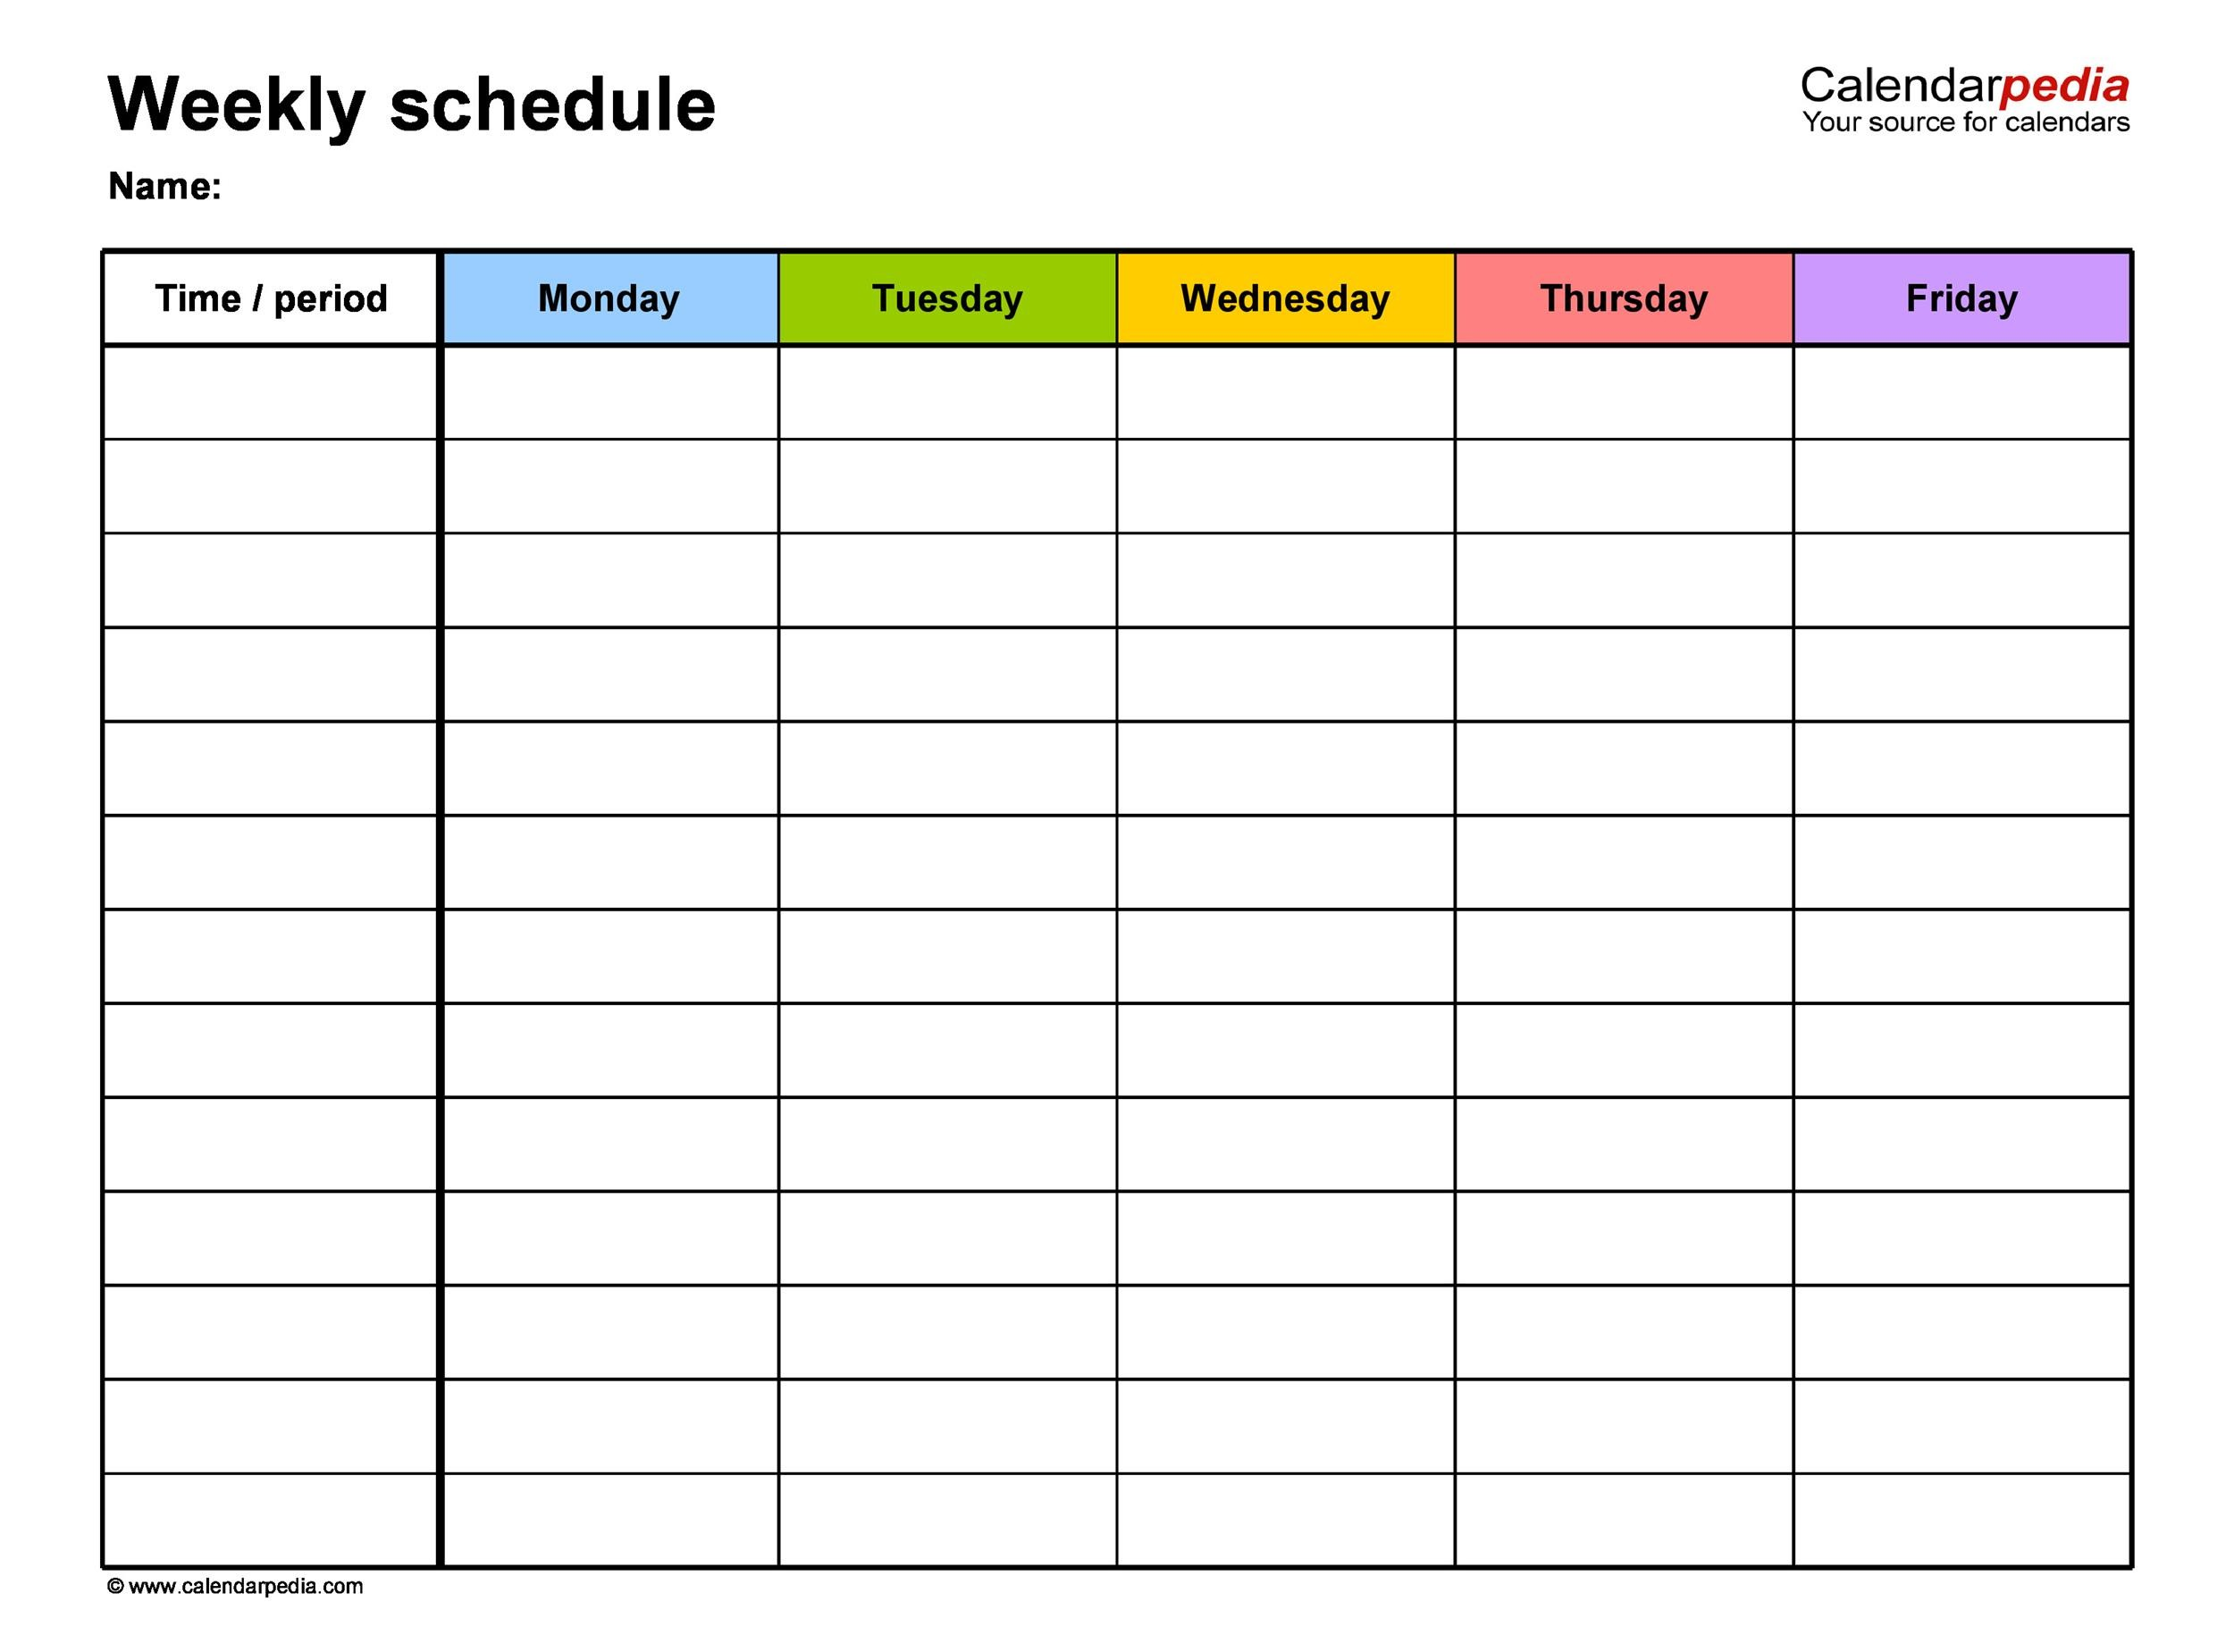 17 perfect daily work schedule templates template lab for Building work schedule template